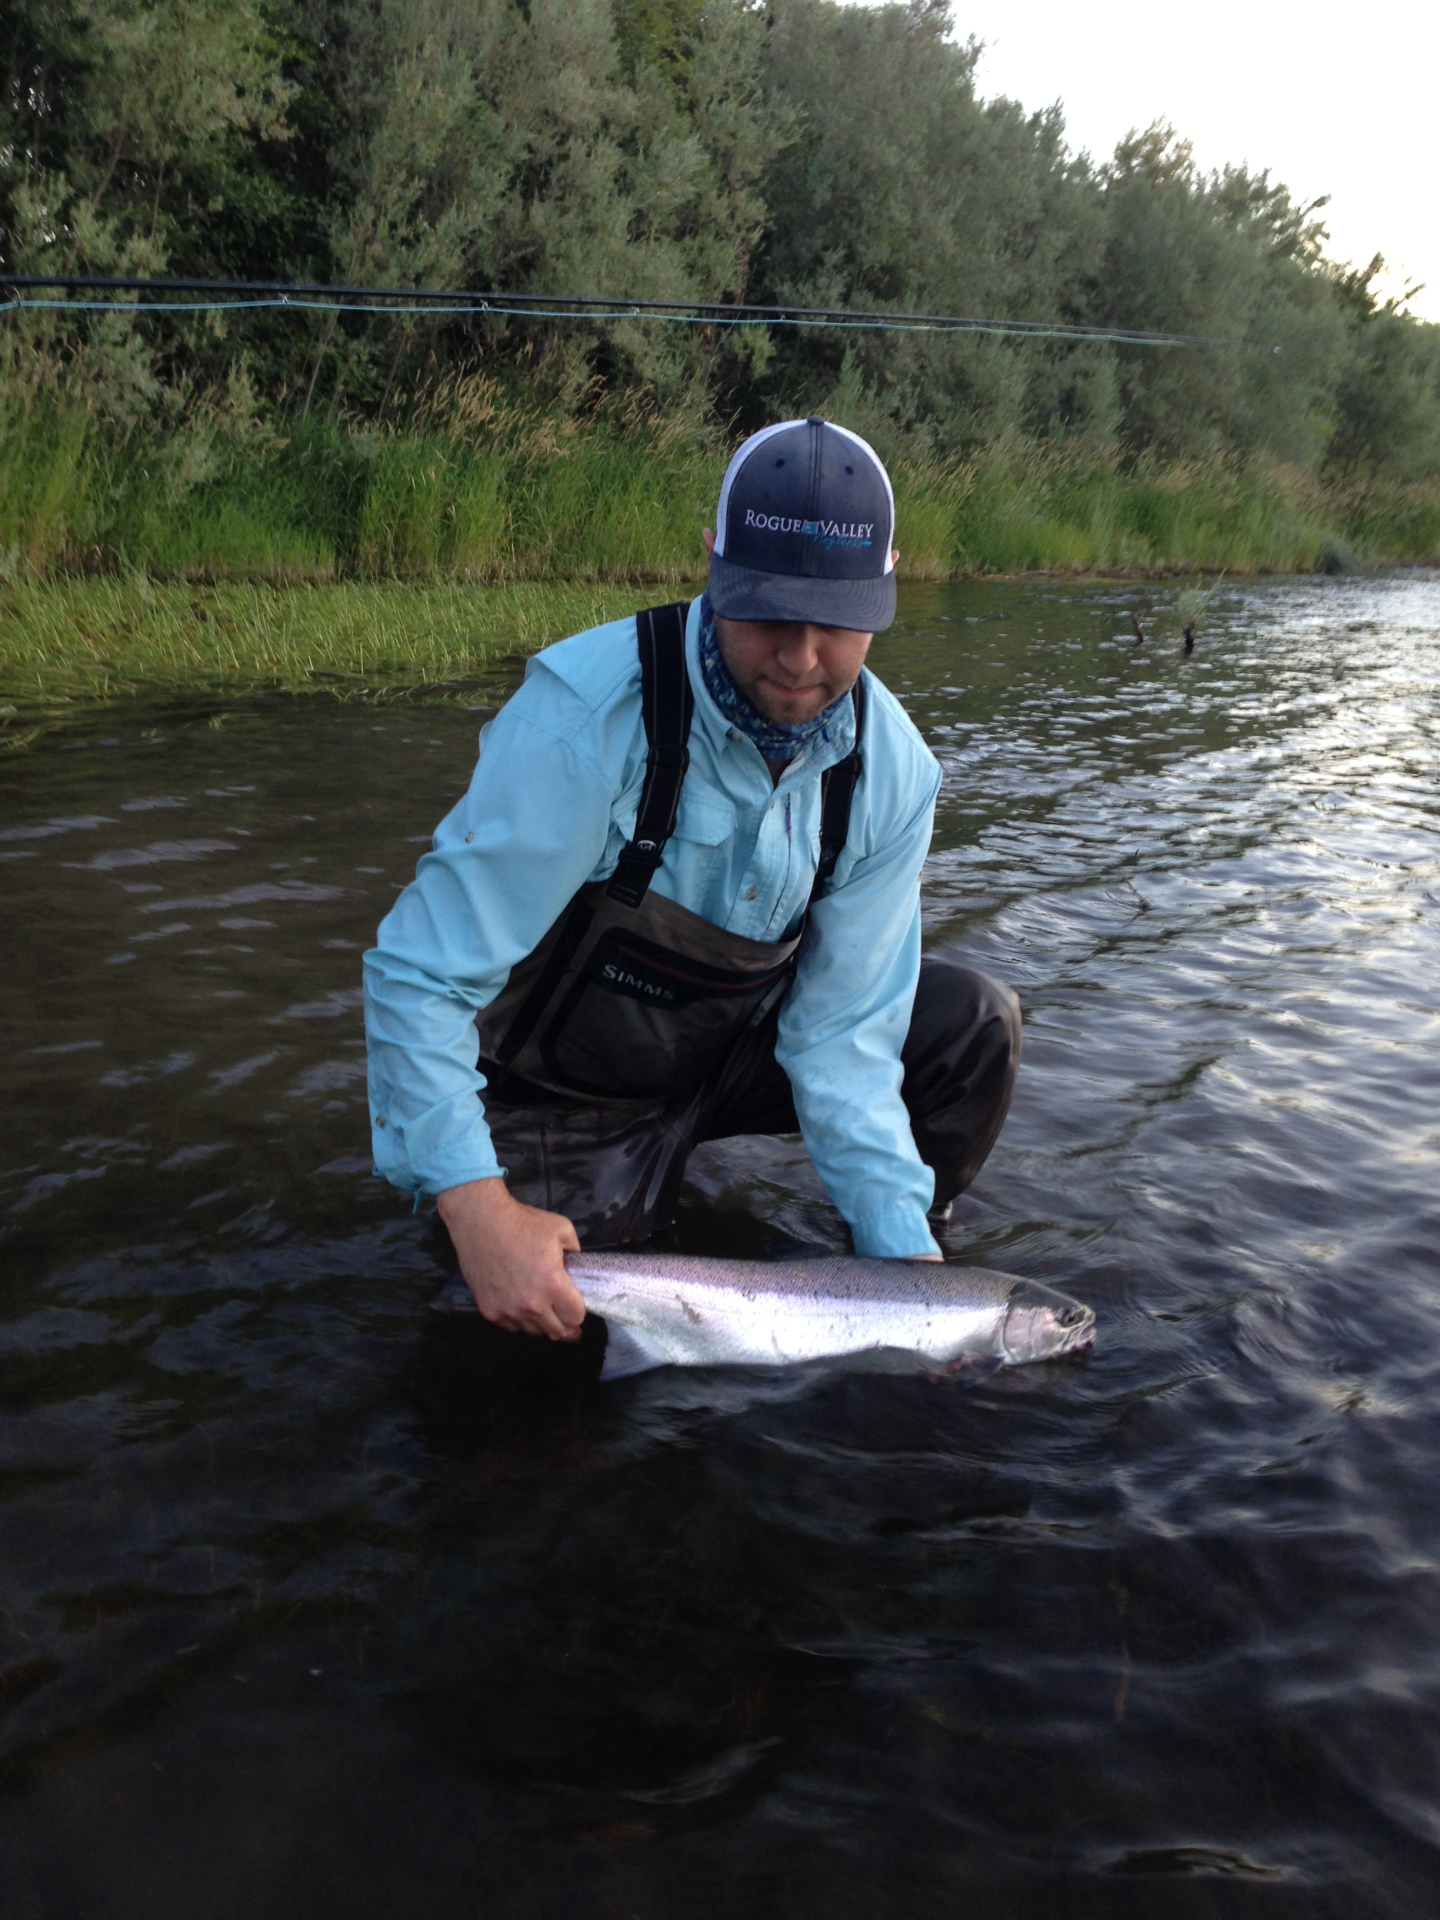 steelhead fly fishing, rogue river steelhead, Rogue River fishing report, medford oregon fly fishing shop